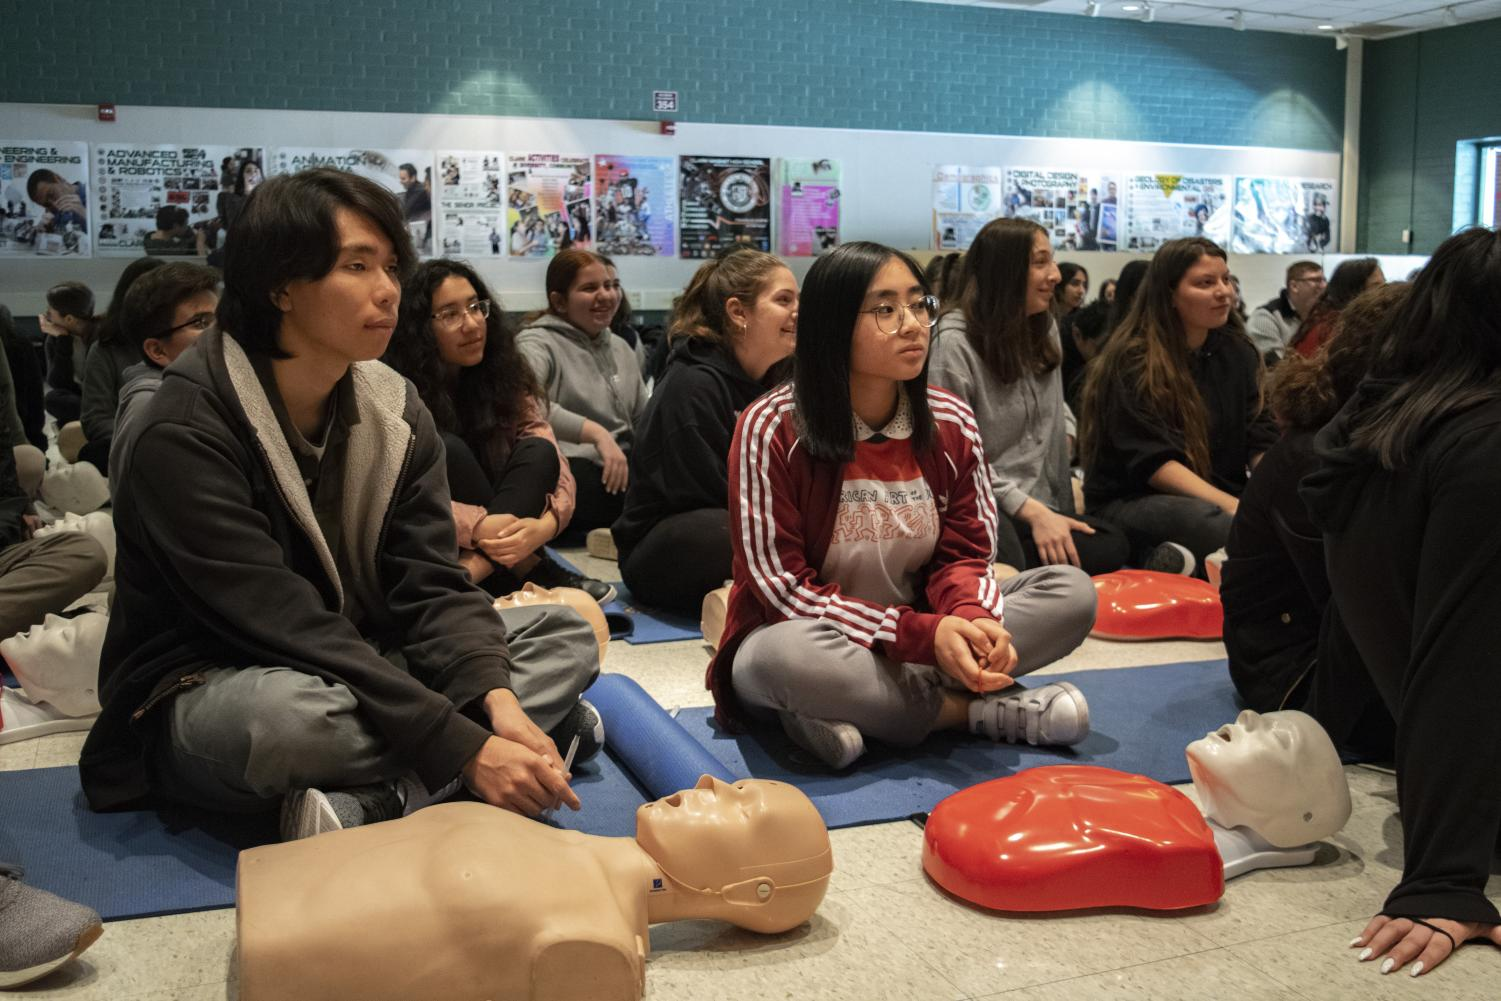 Seniors practice CPR on dummies during the CPR training at Clark!